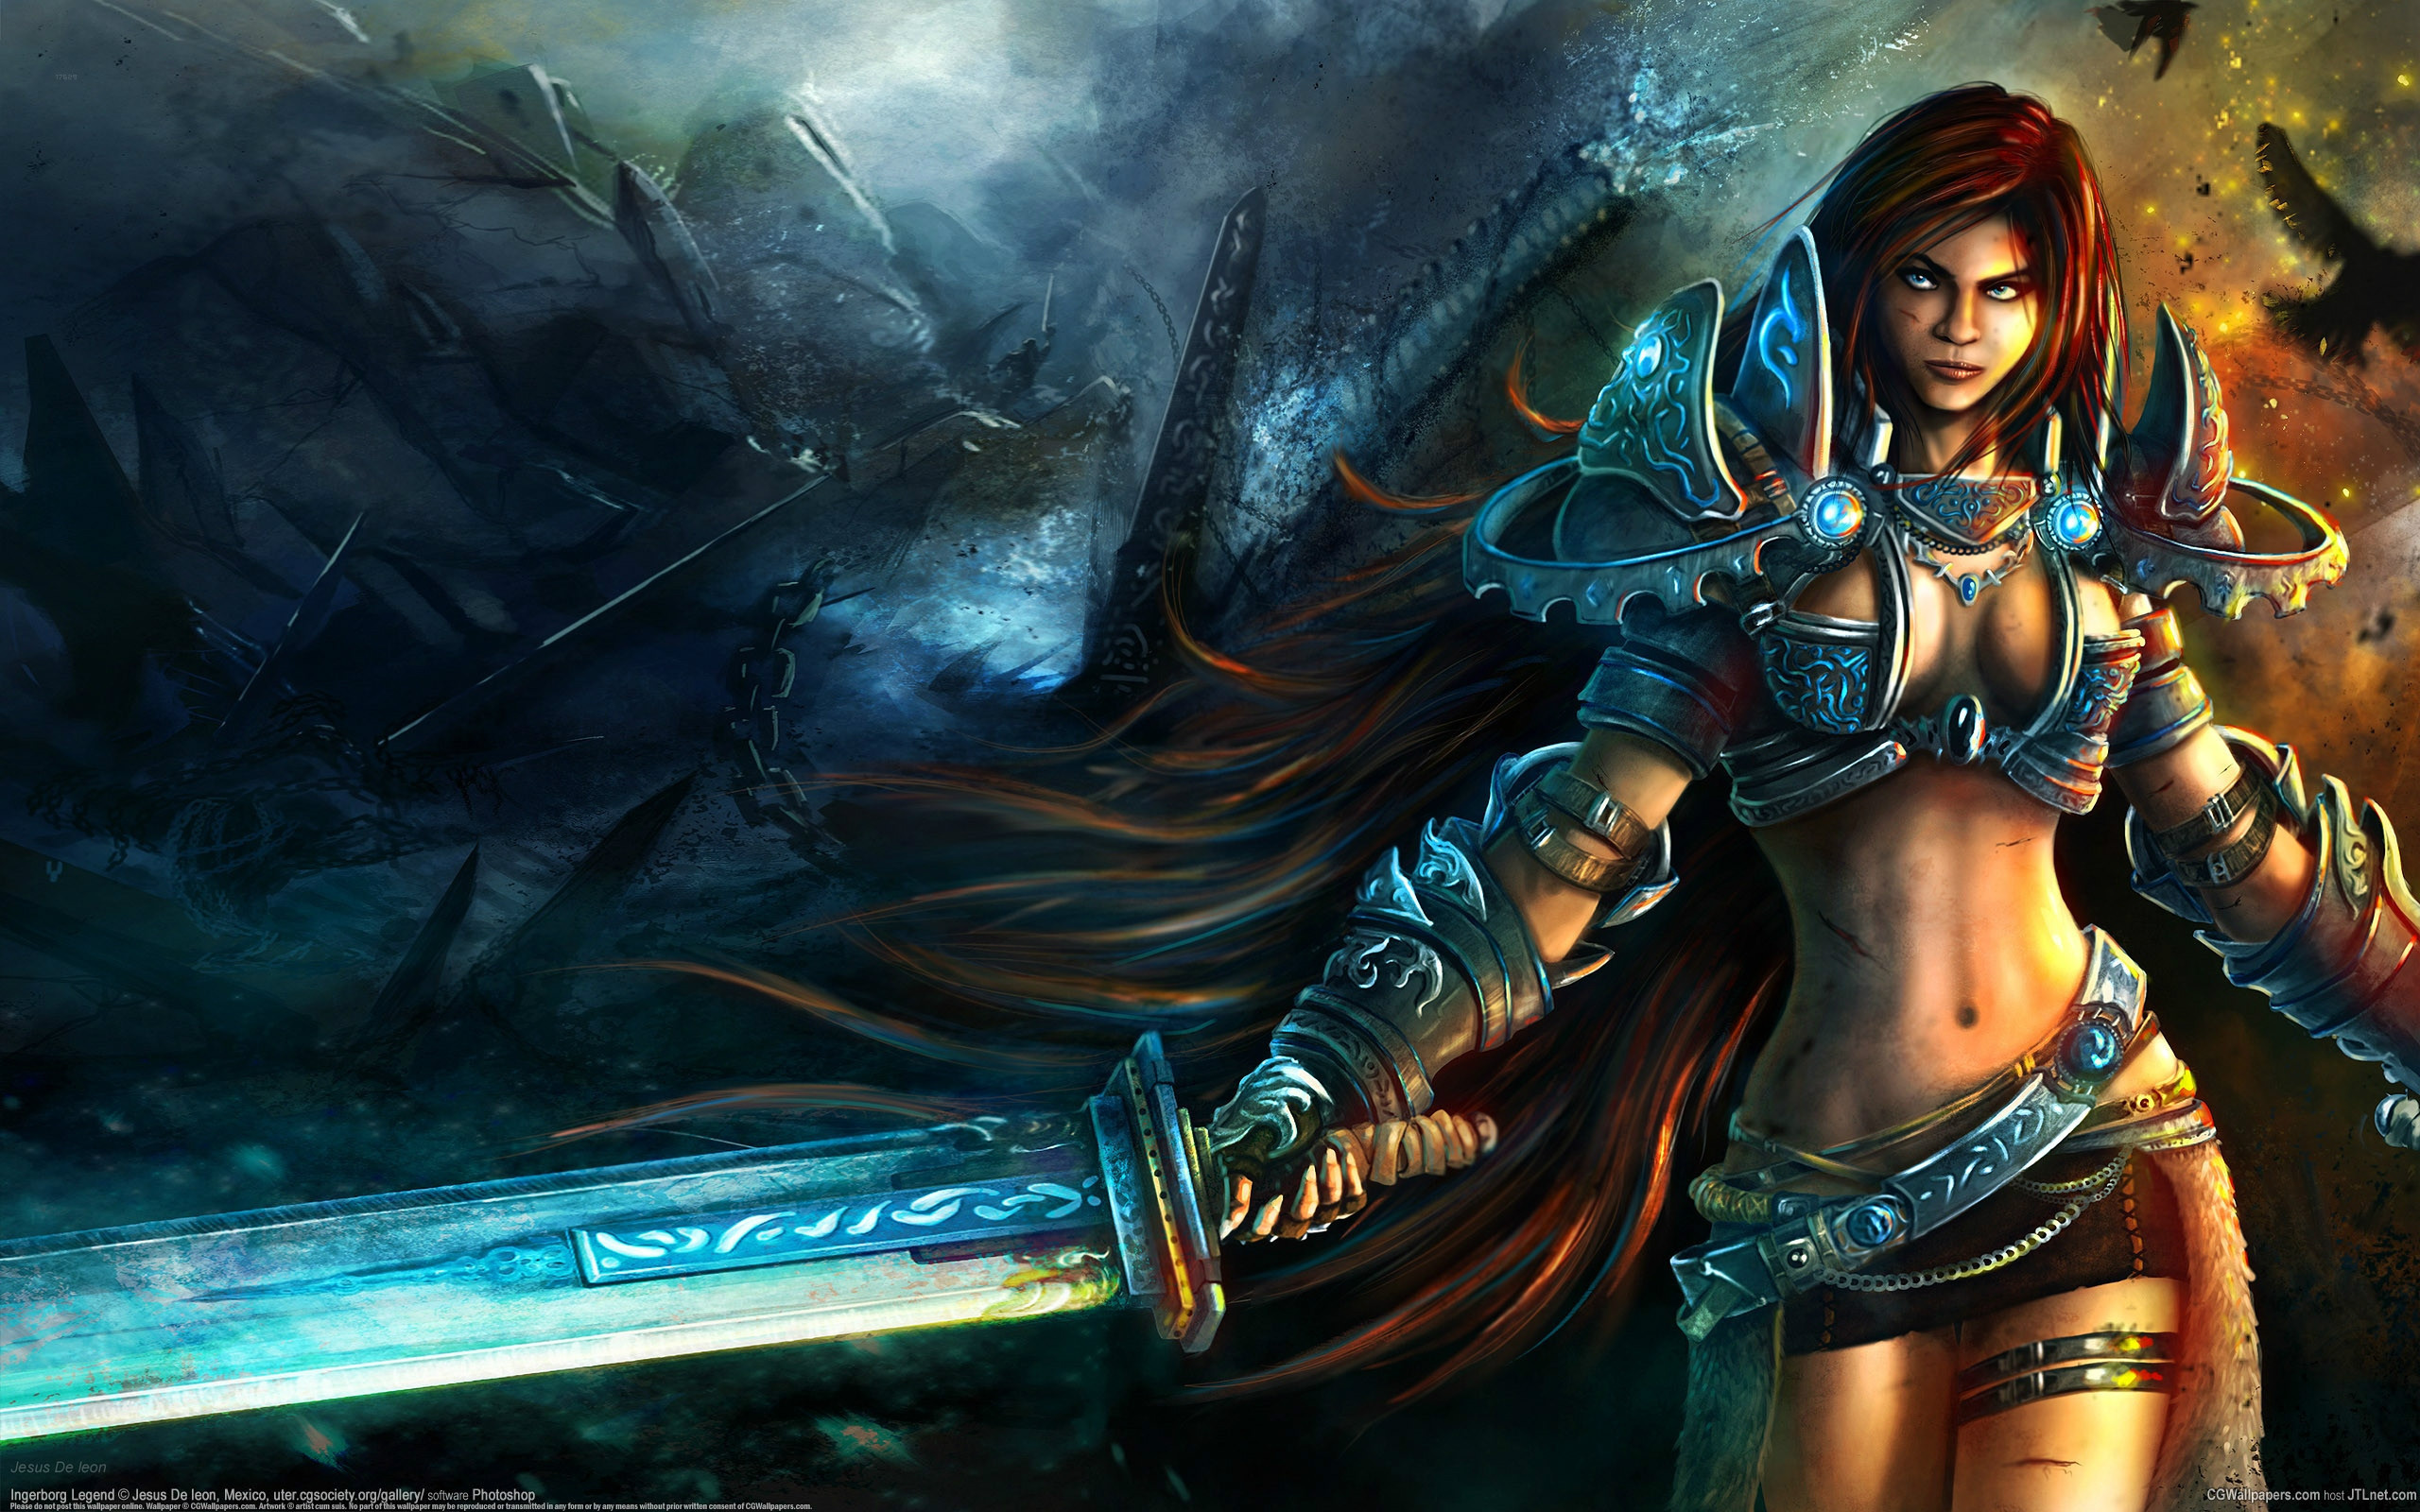 Anime Inspired Hd Fantasy Wallpapers For Your Collection: Fantasy Warrior Women Wallpaper (78+ Images